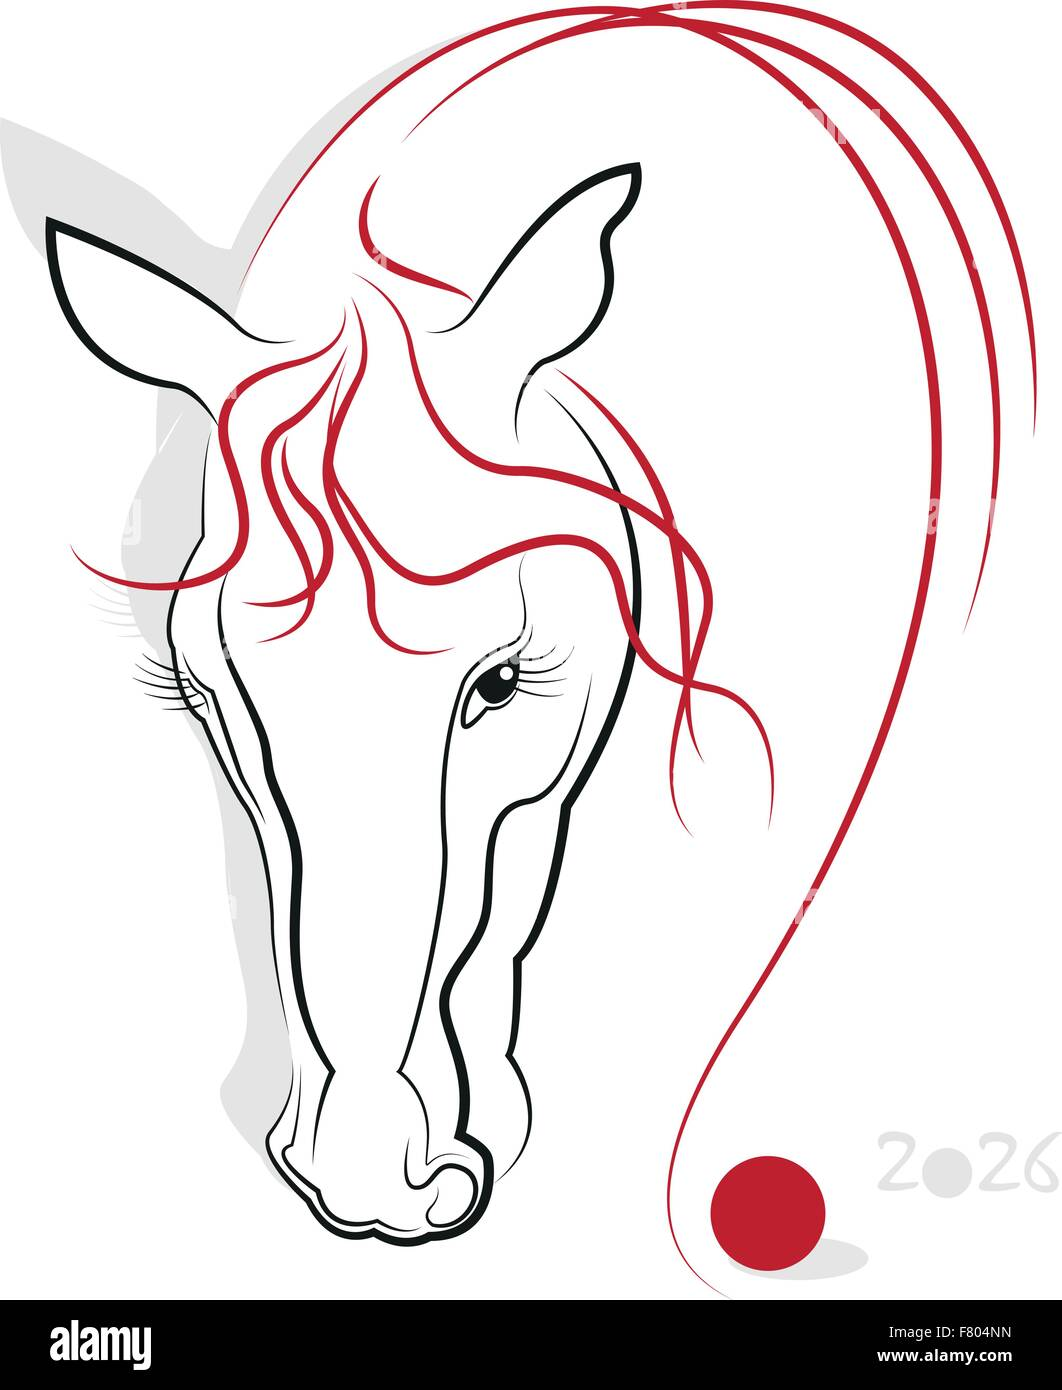 chinese new year 2026 of the horse greeting or invitation card for the holiday vector illustration